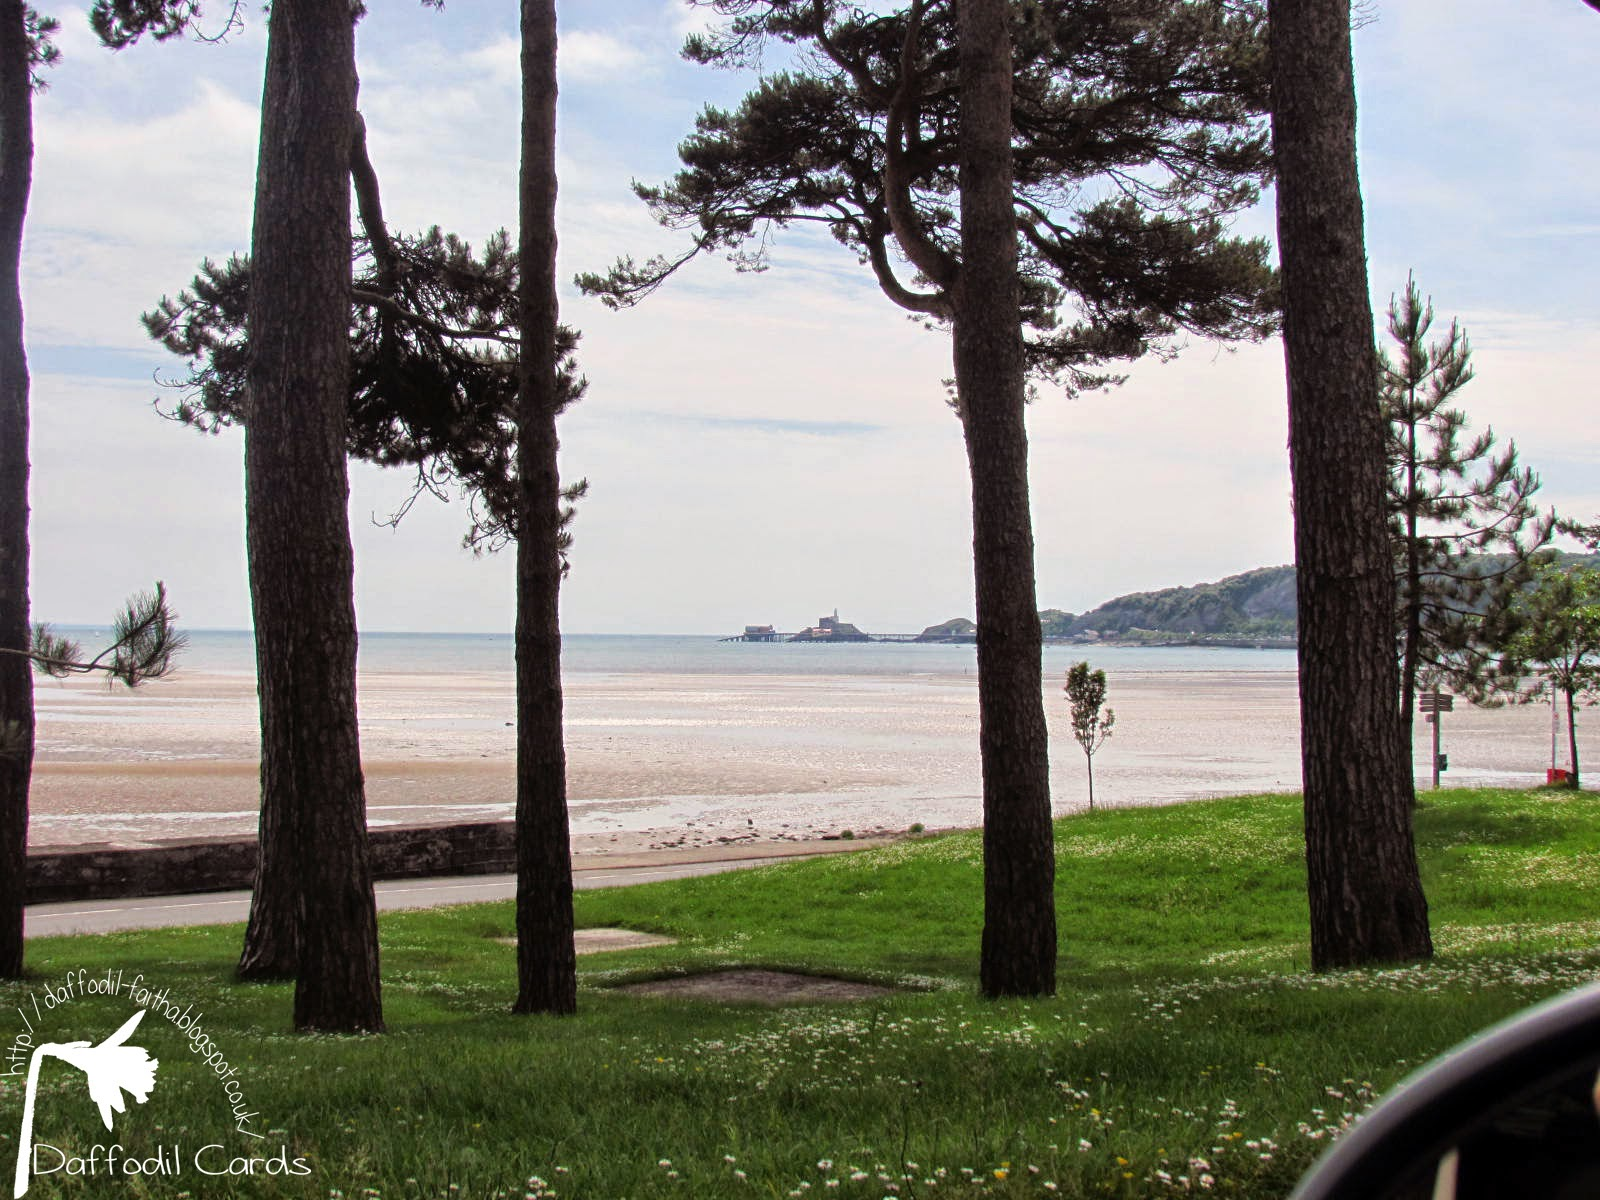 visit to seaside Seaside & gearhart  several scenic towns and natural areas offer vacation destinations surrounded by state parks and fishing, hiking, kayaking, surfing and bird.